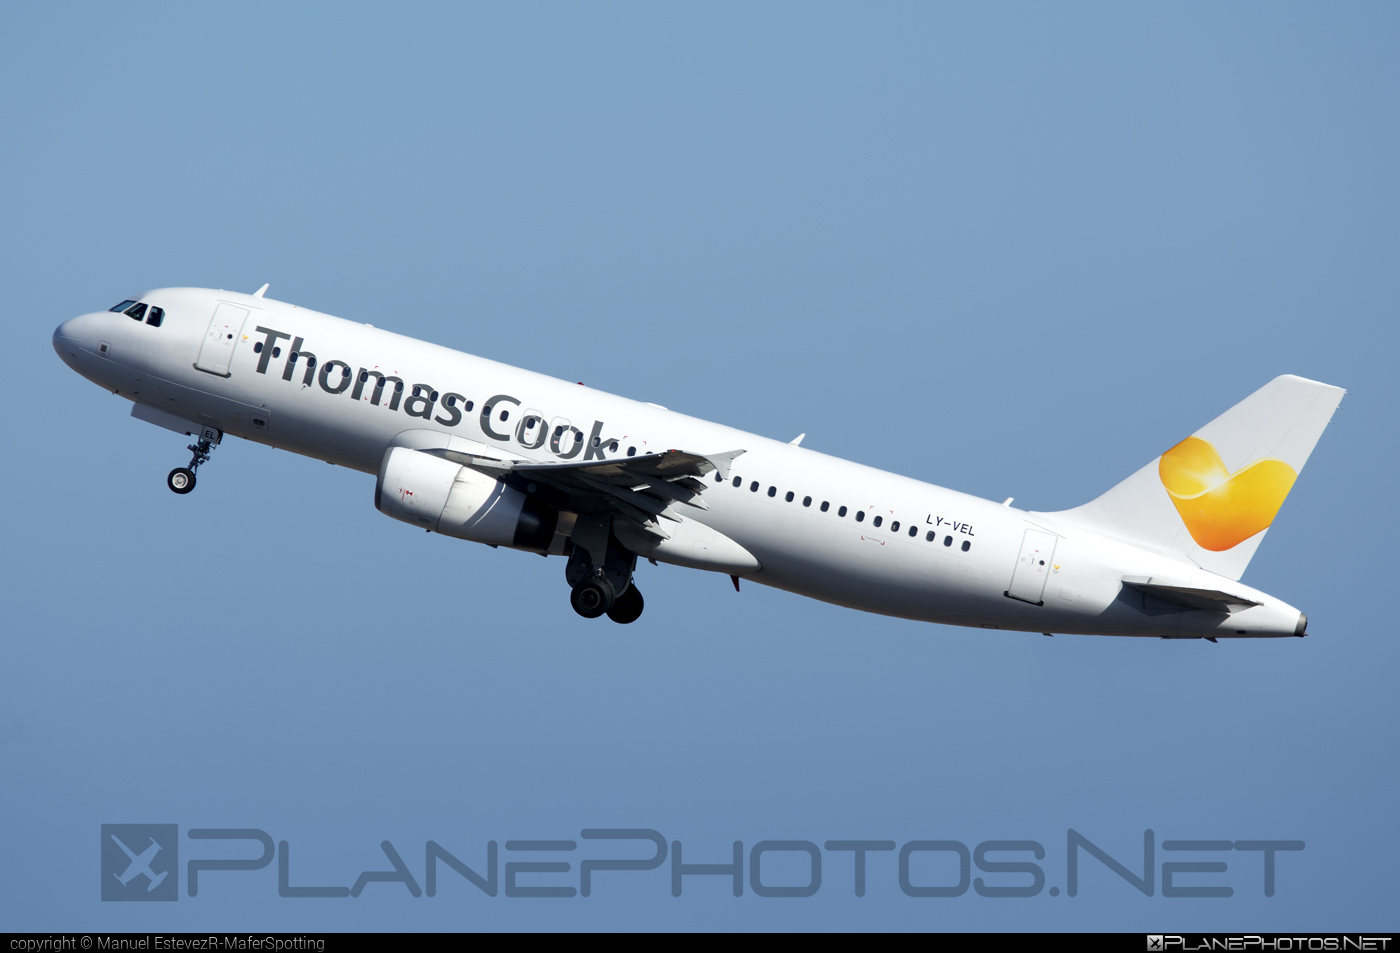 Airbus A320-232 - LY-VEL operated by Thomas Cook Airlines #a320 #a320family #airbus #airbus320